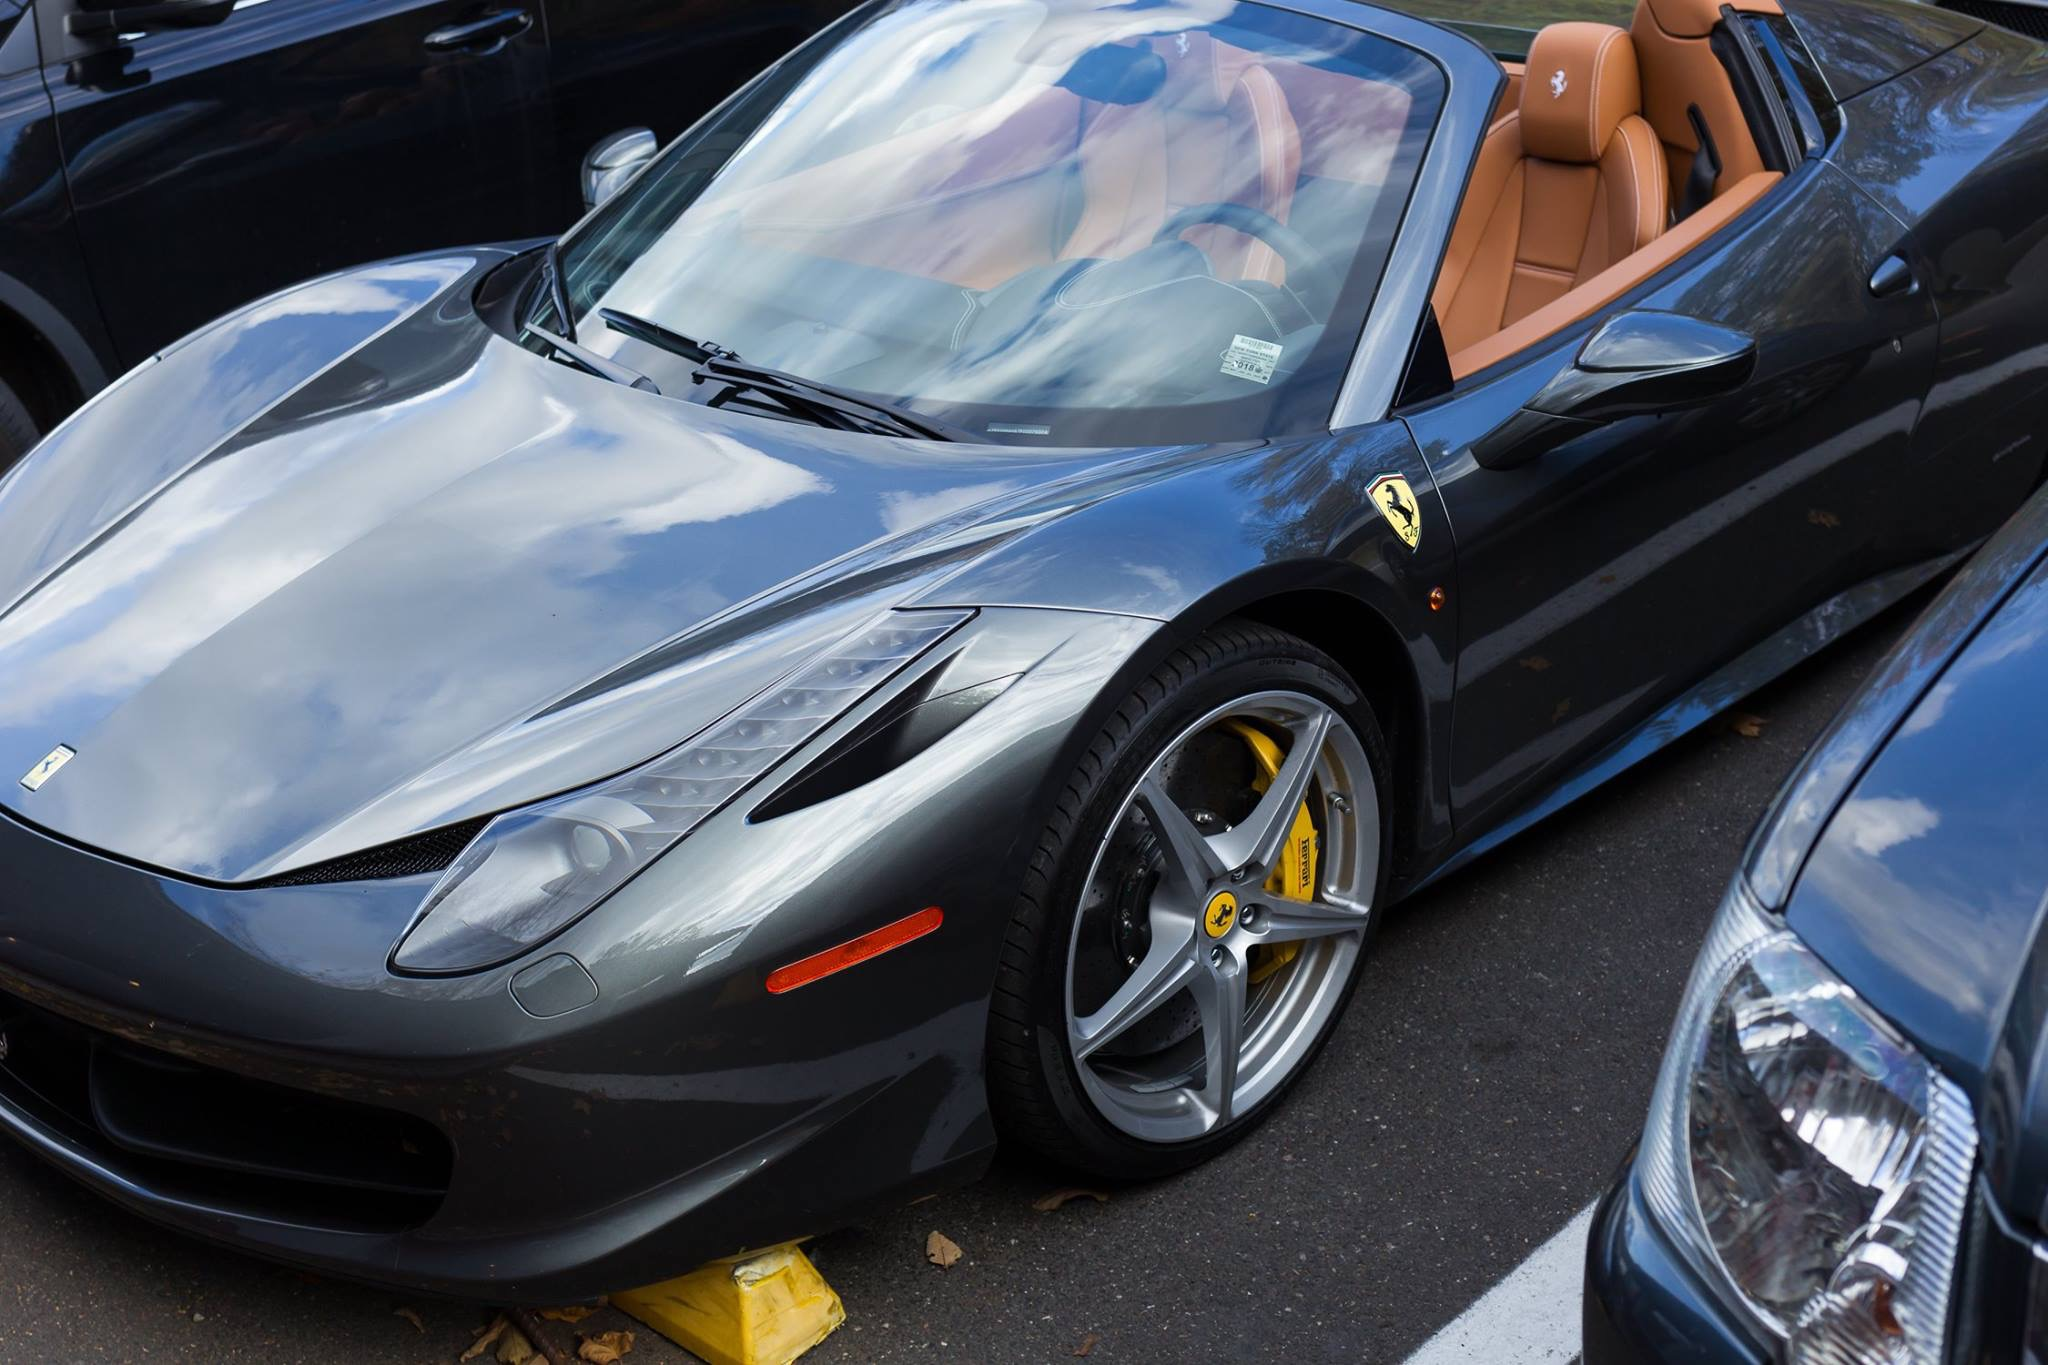 Best Lens For Car Show Photography Canon Community - Car show photography